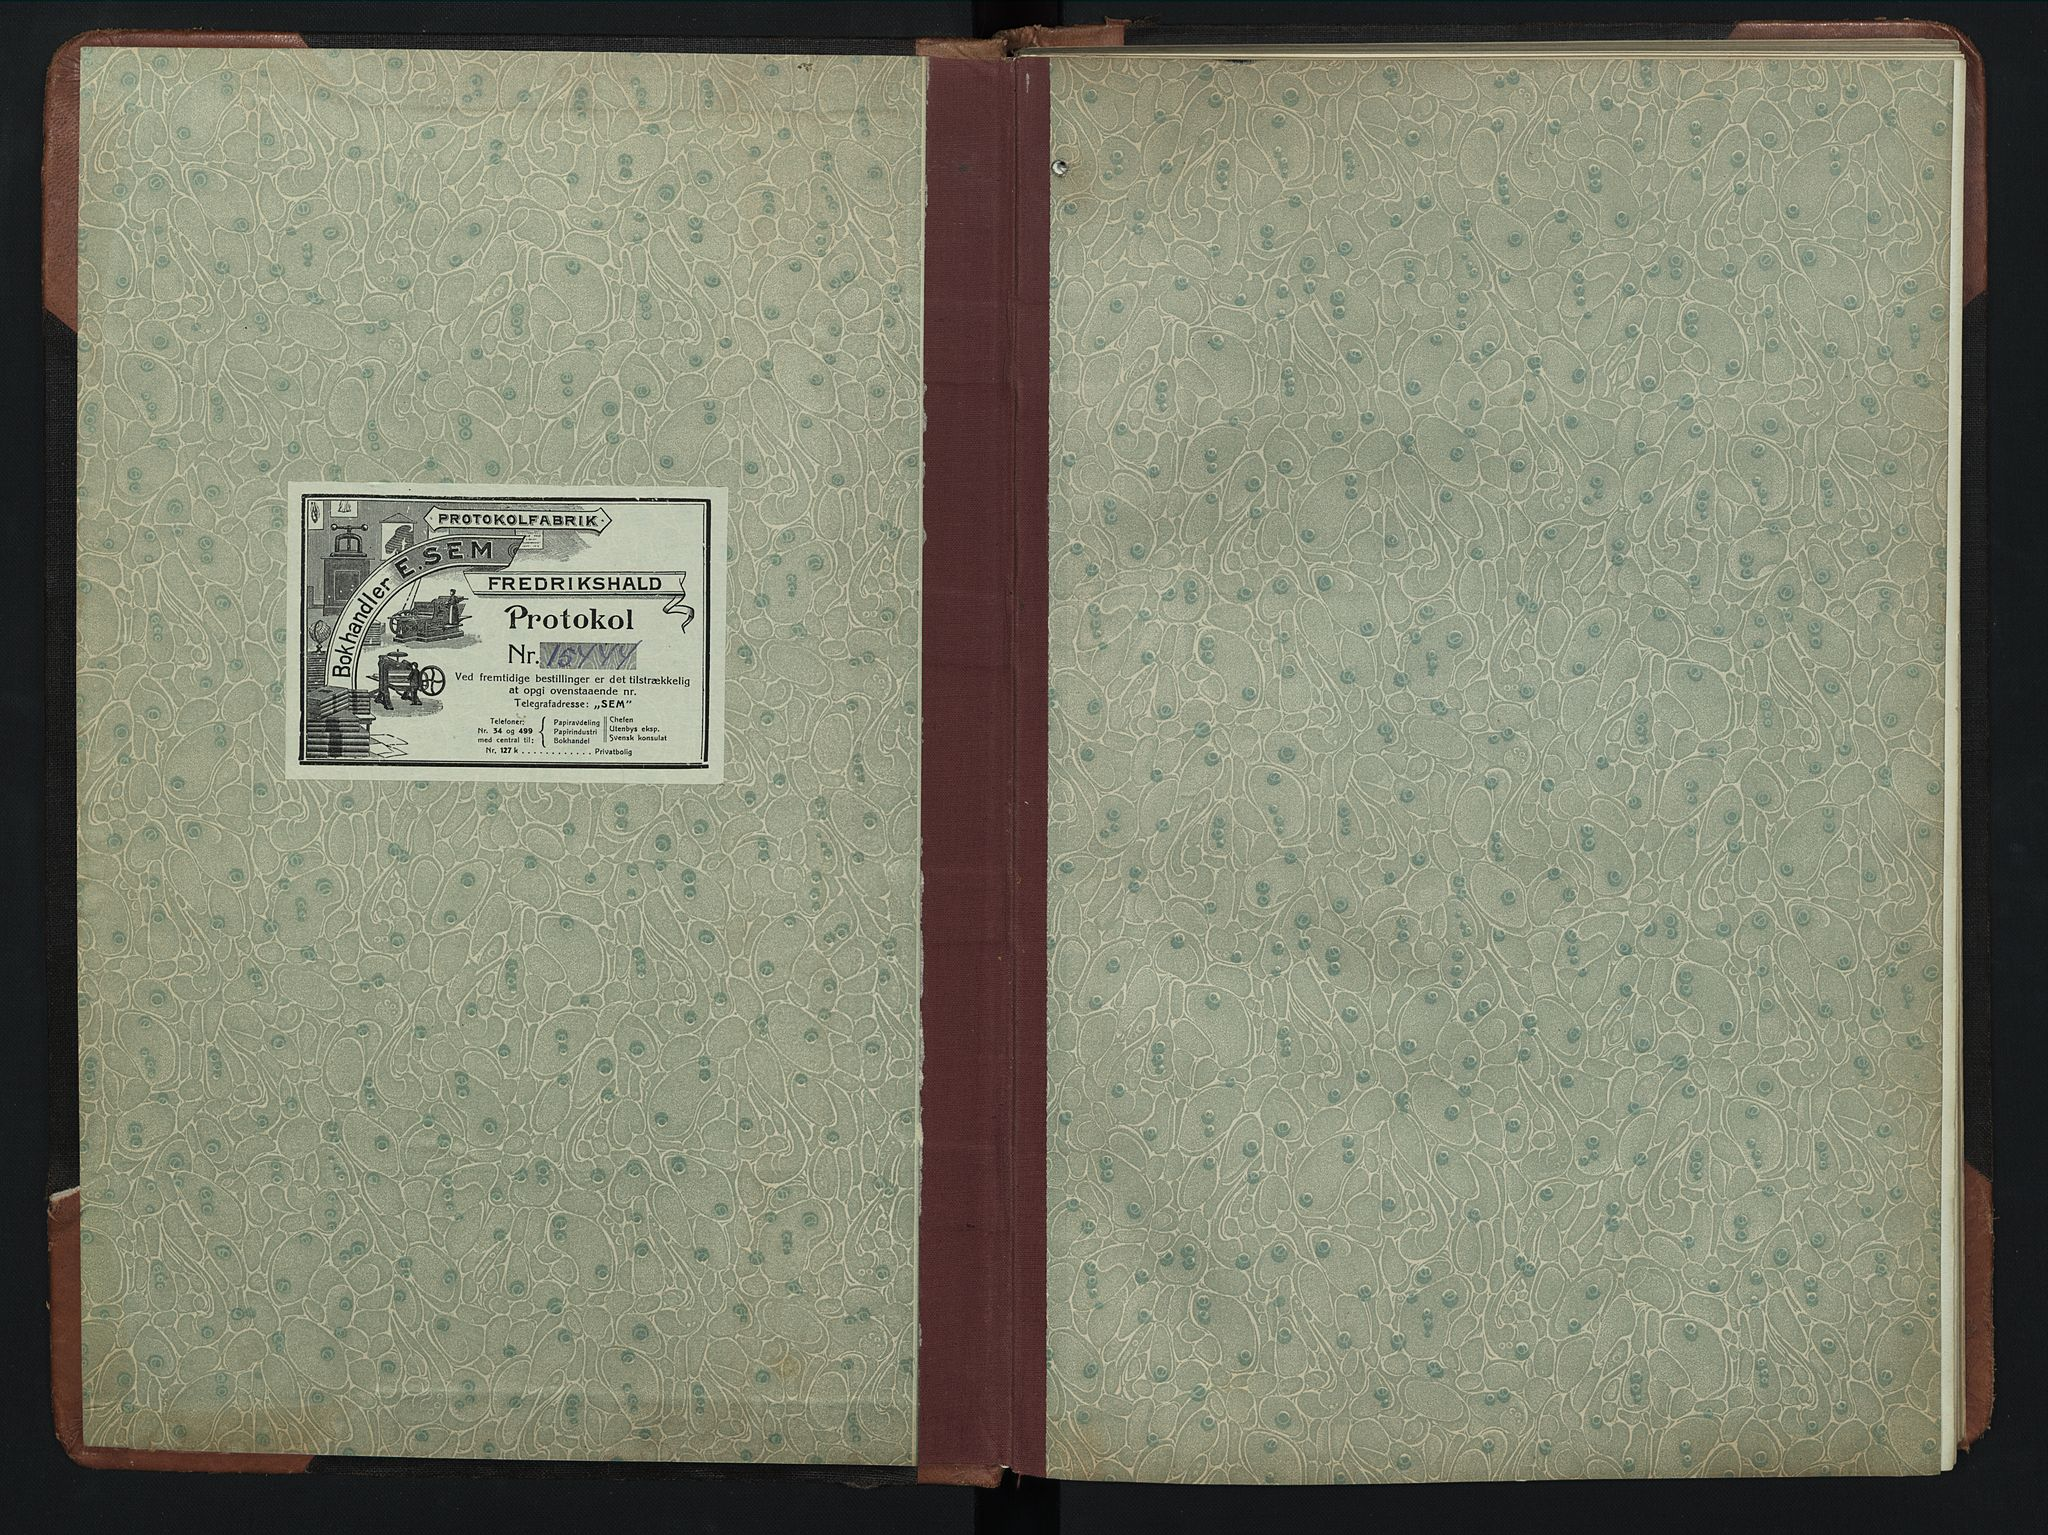 SAH, Rendalen prestekontor, H/Ha/Hab/L0008: Parish register (copy) no. 8, 1914-1948